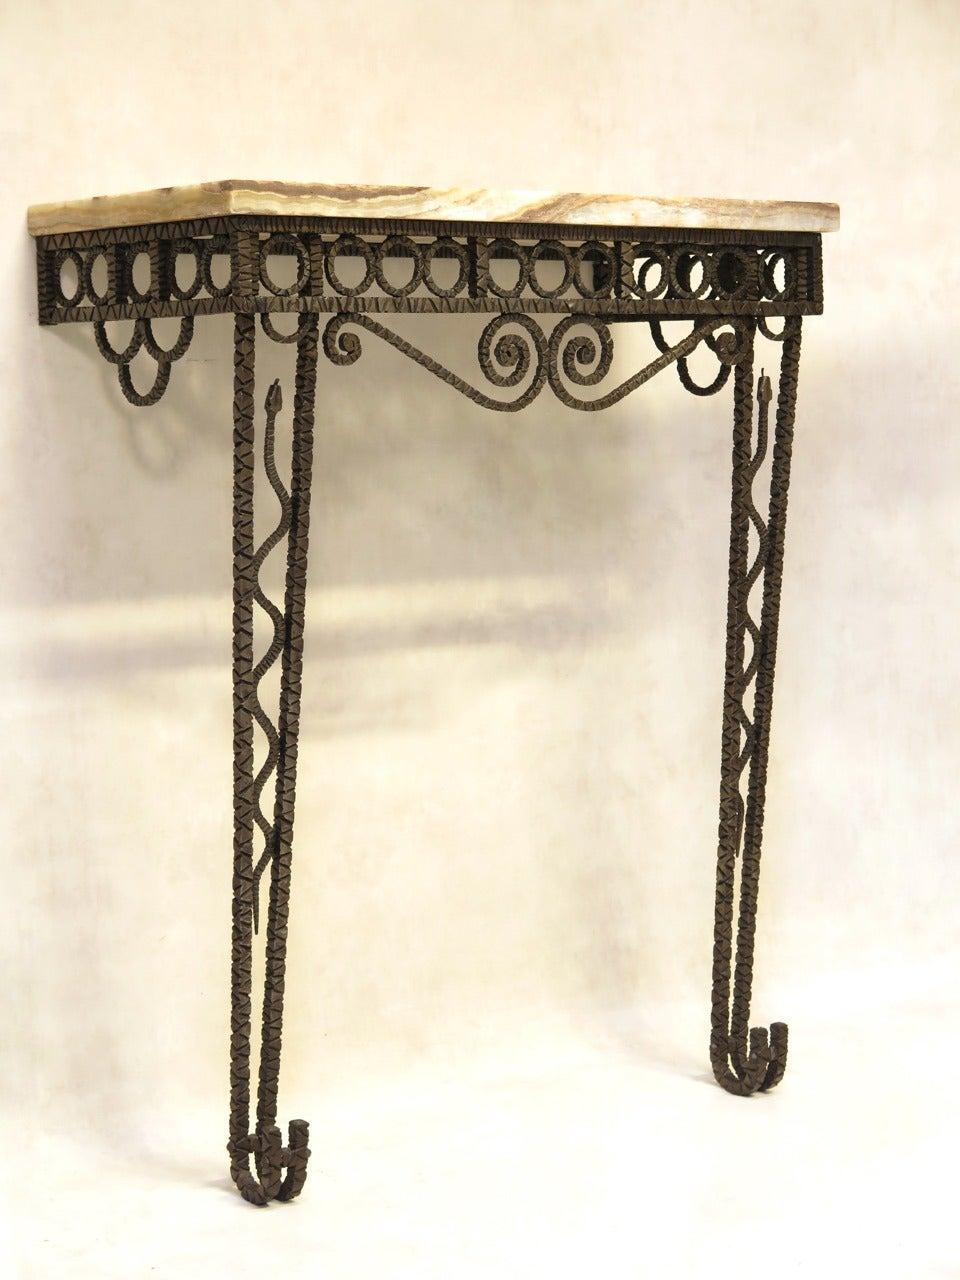 Striking Art Deco console in hammered wrought-iron with a decorated with a snake on each leg. The tapering legs end in elegant outwardly upturned feet. The apron is decorated with a frieze of circles, and scrolling arabesques. The top is made of a